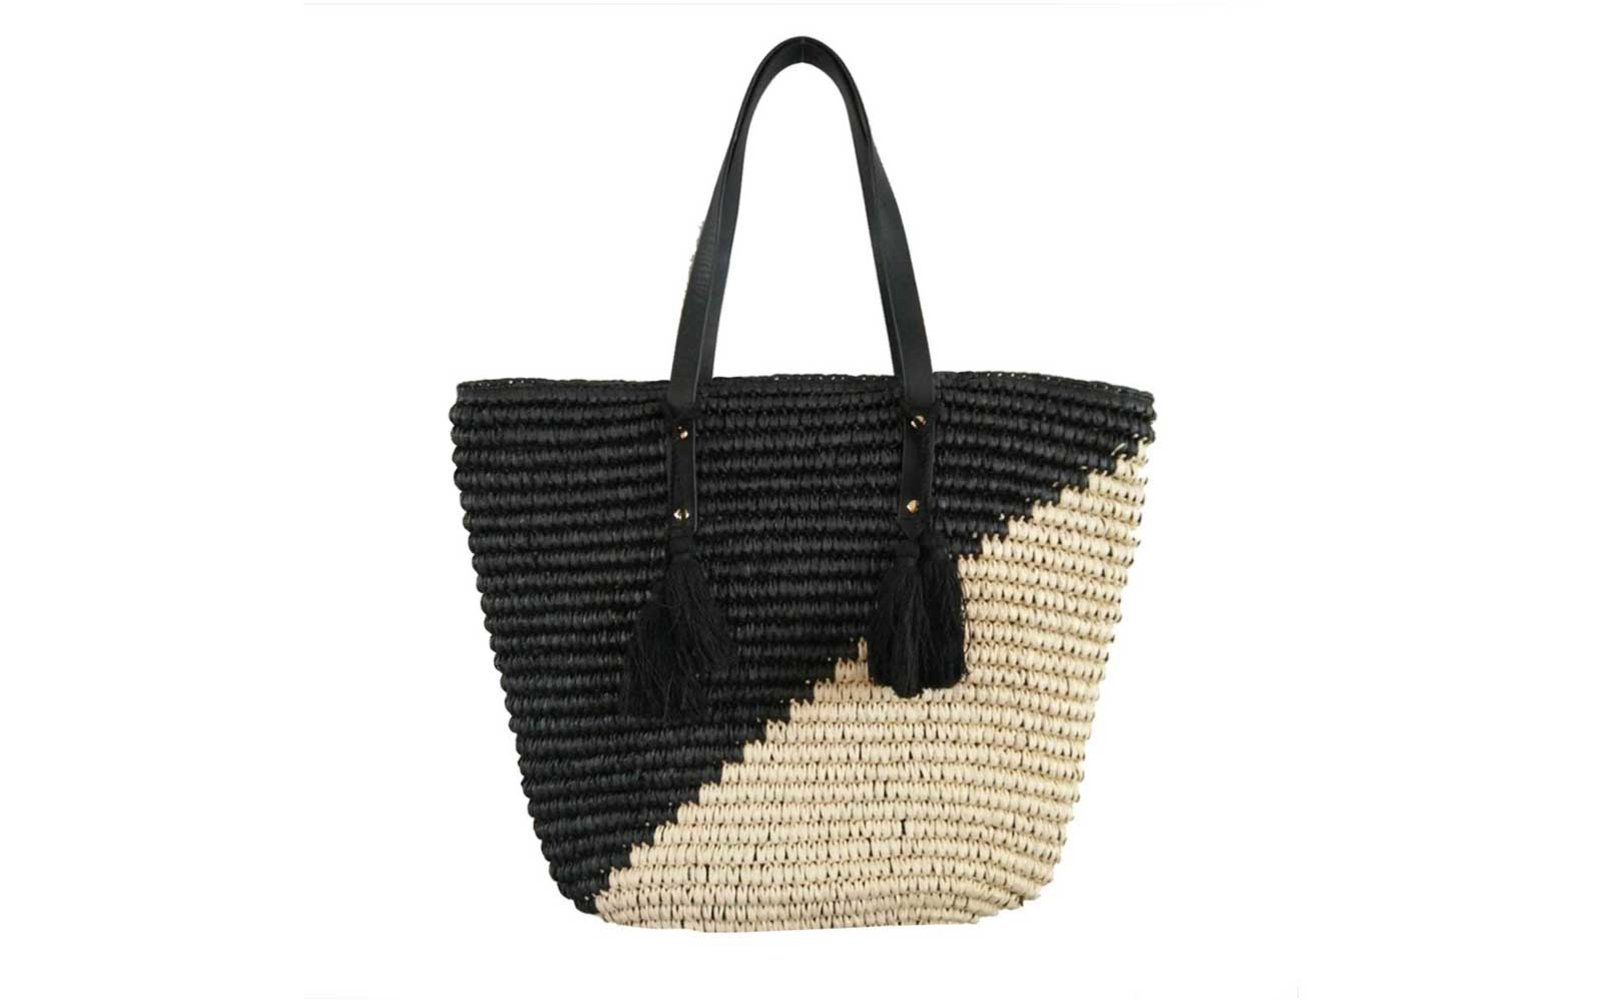 Gifts to get on Amazon Beach'd Straw Beach Tote Shoulder Bag